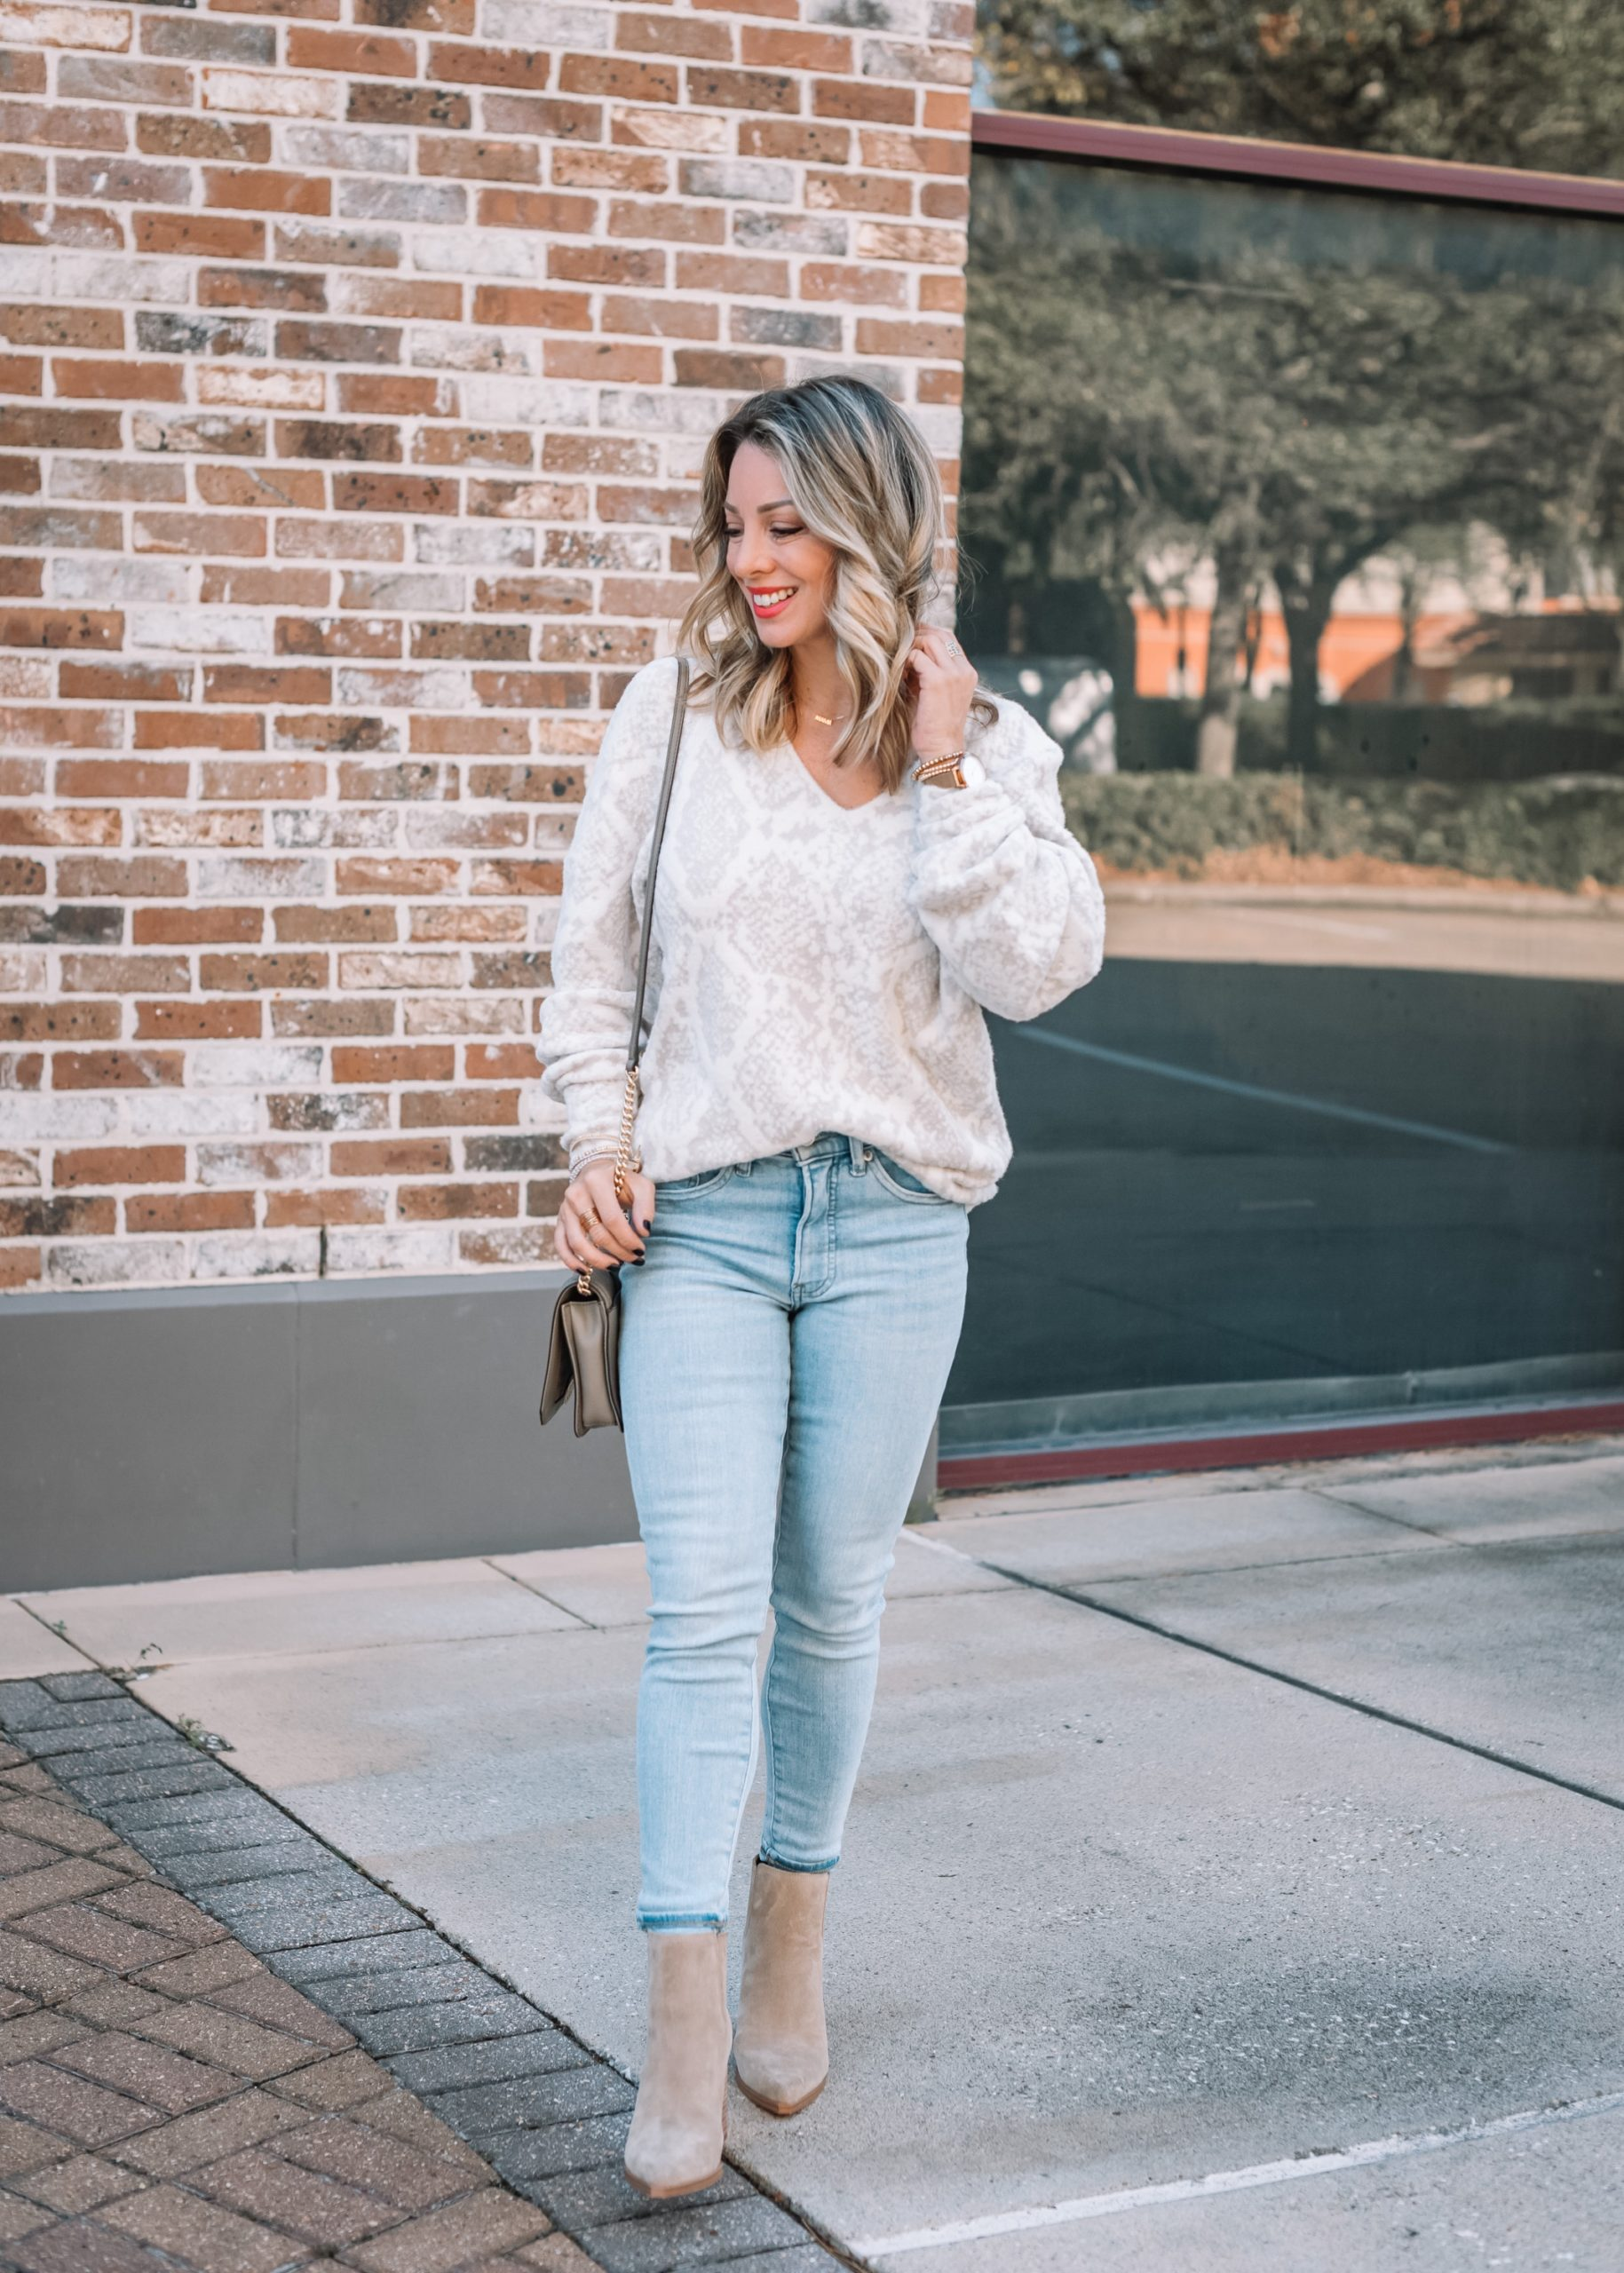 Express Fashion, Snakeskin Sweater, Jeans, Crossbody, Booties